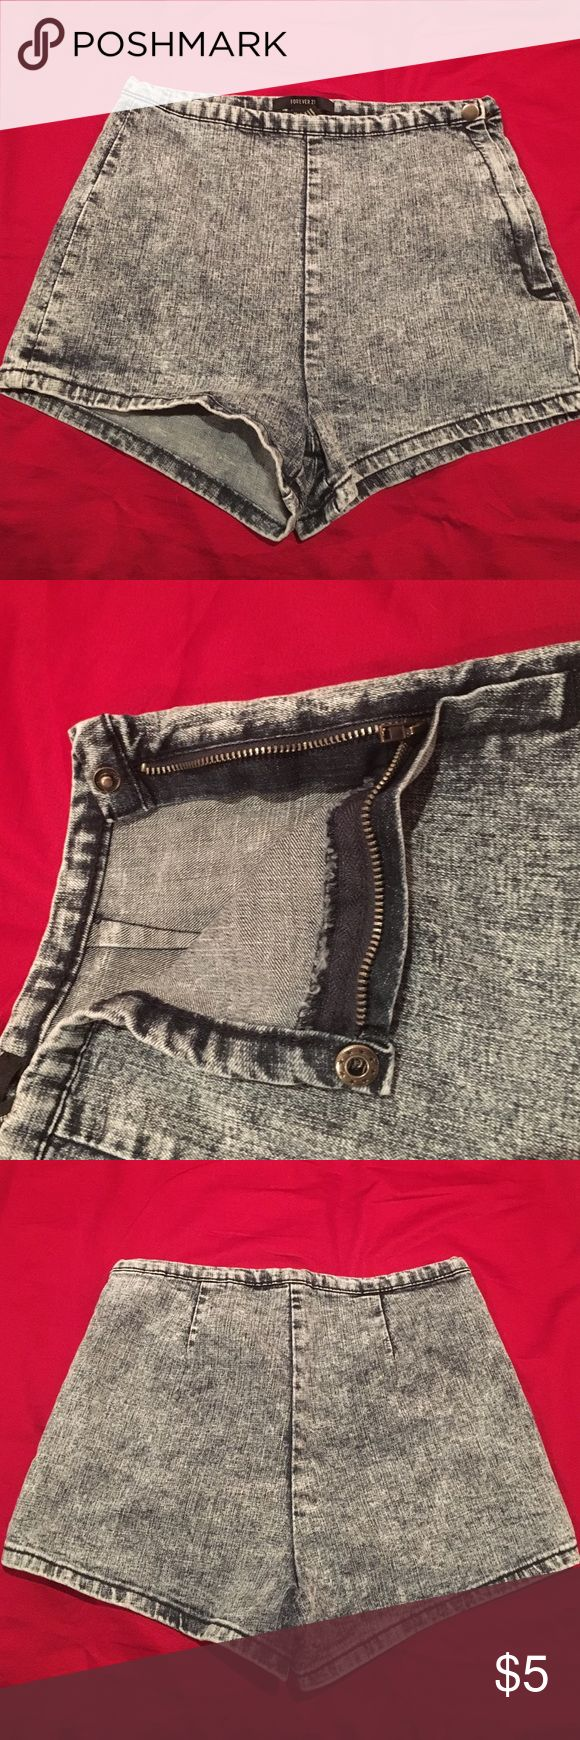 Acid wash shorts Cute and stylish, no pockets and flatters your figure. Side zipper with button on top. Inseam: 2 inches. Leg width: 10.5 inches. Length: 12.5 inches Forever 21 Shorts Jean Shorts